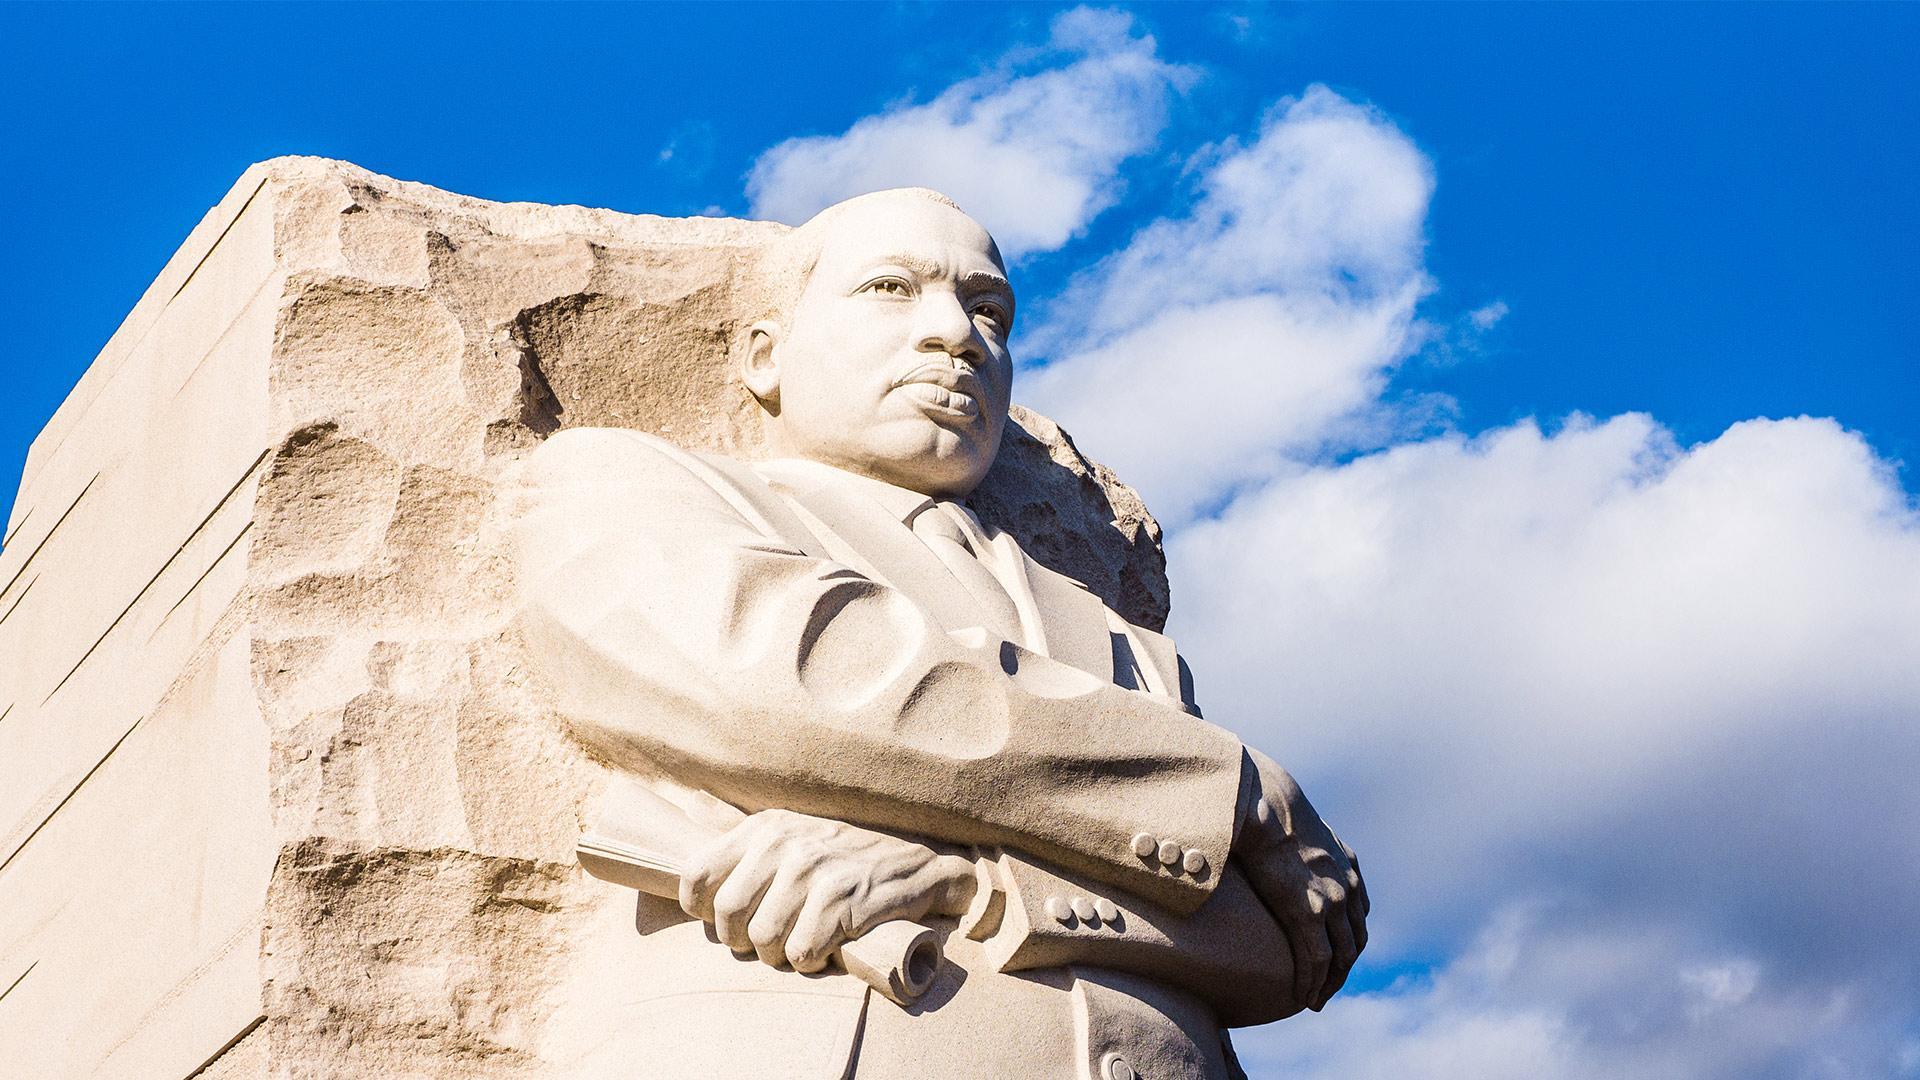 Are Banks Open on Martin Luther King Jr. Day?